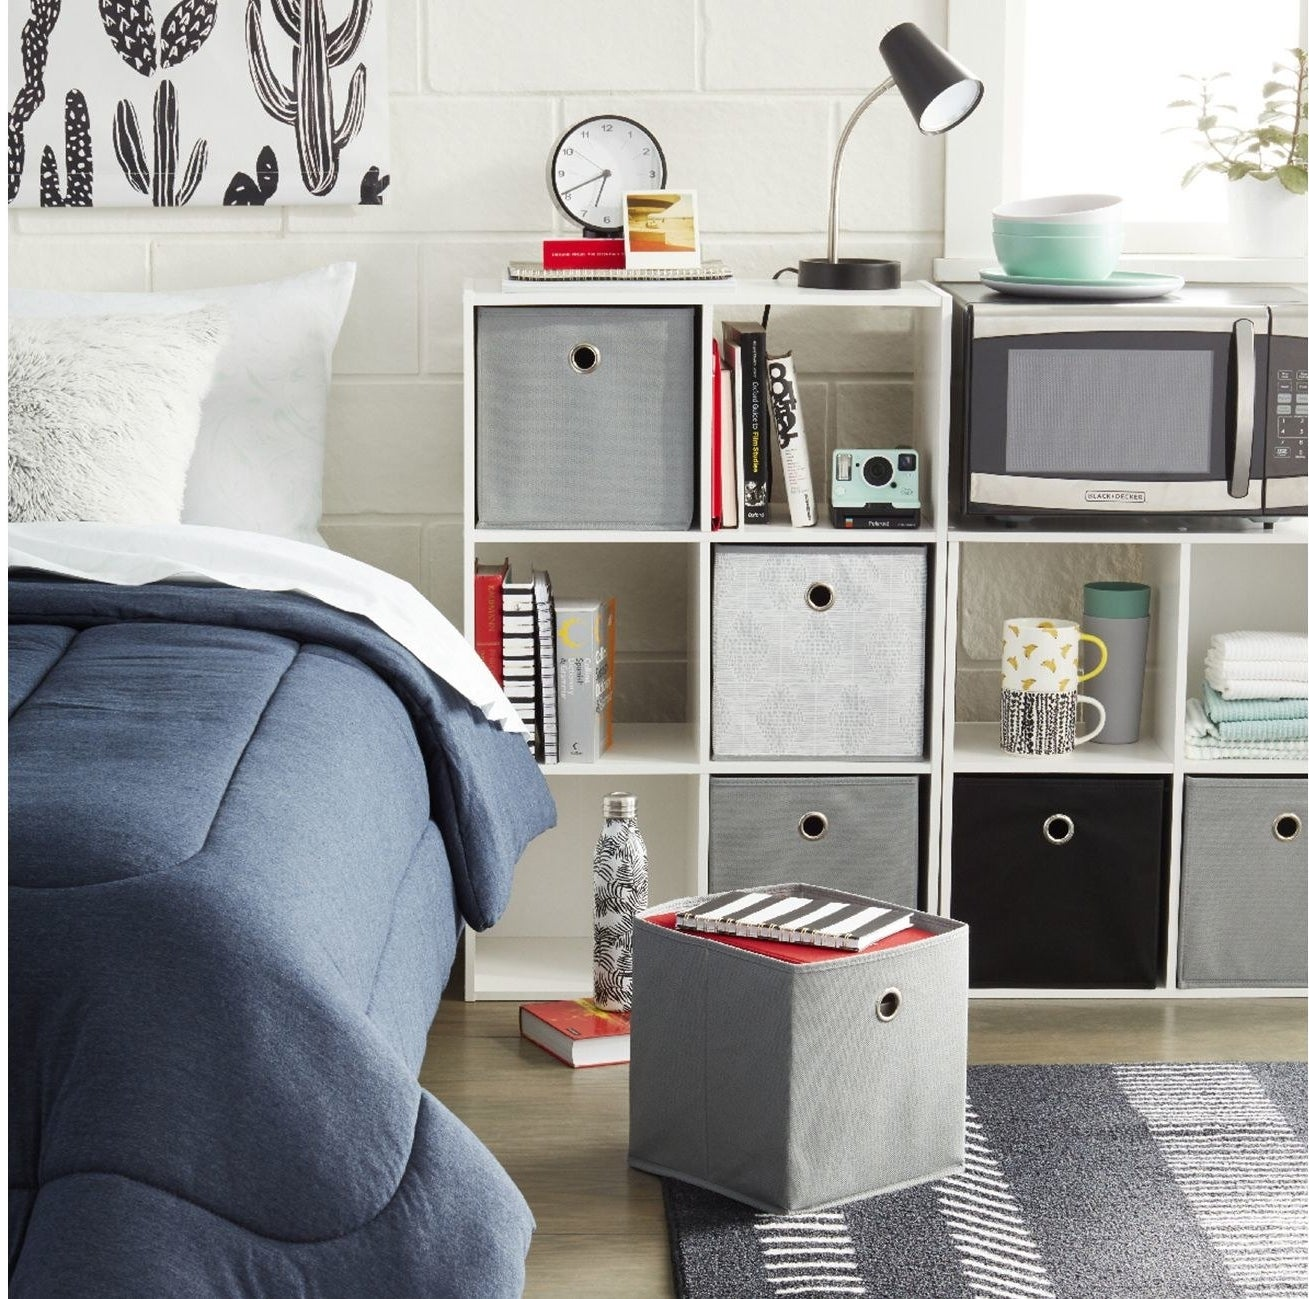 Storage cubes in various colors in a room